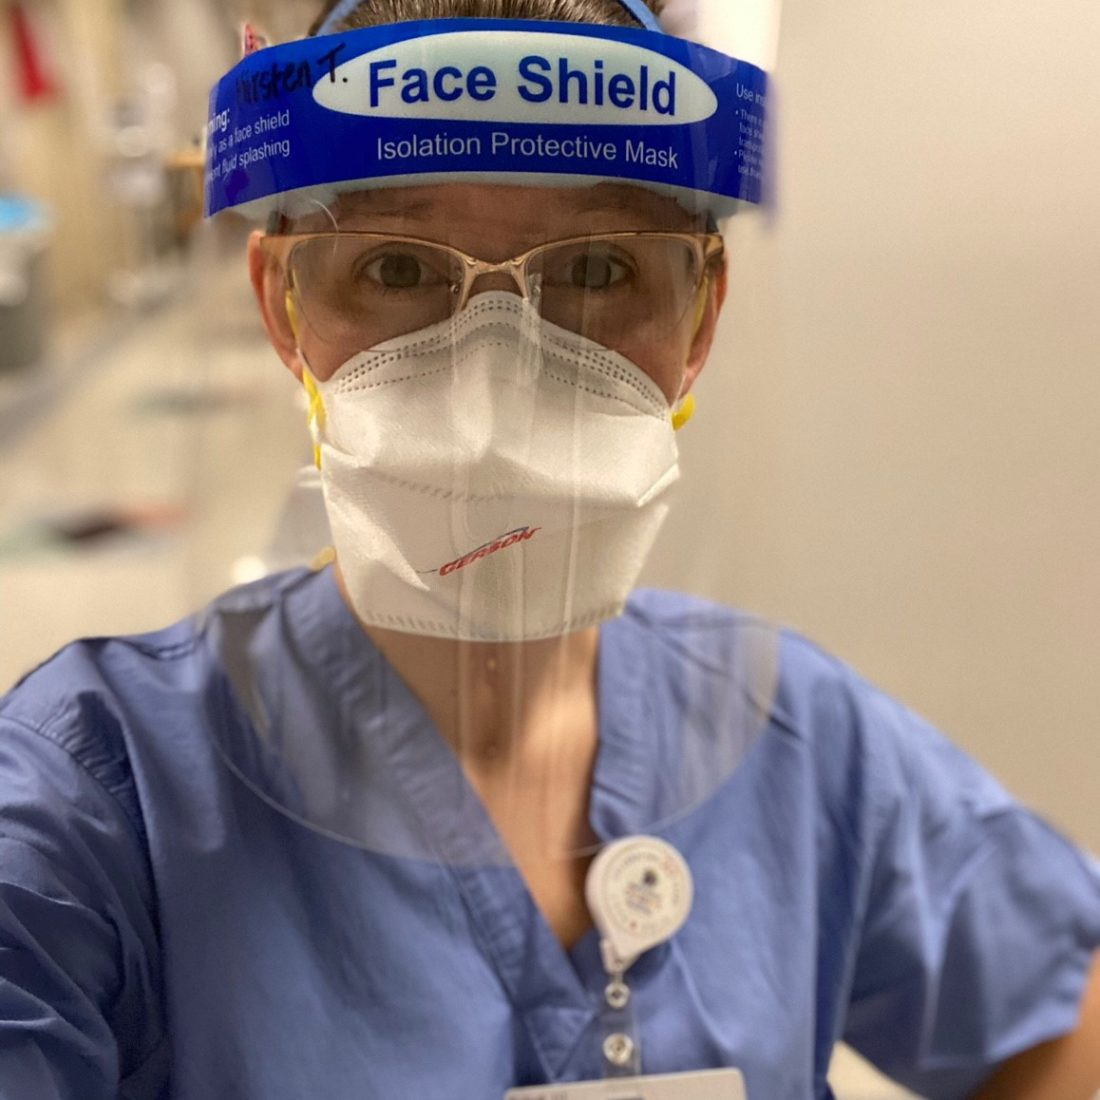 A female nurse wearing a face mask and face shield